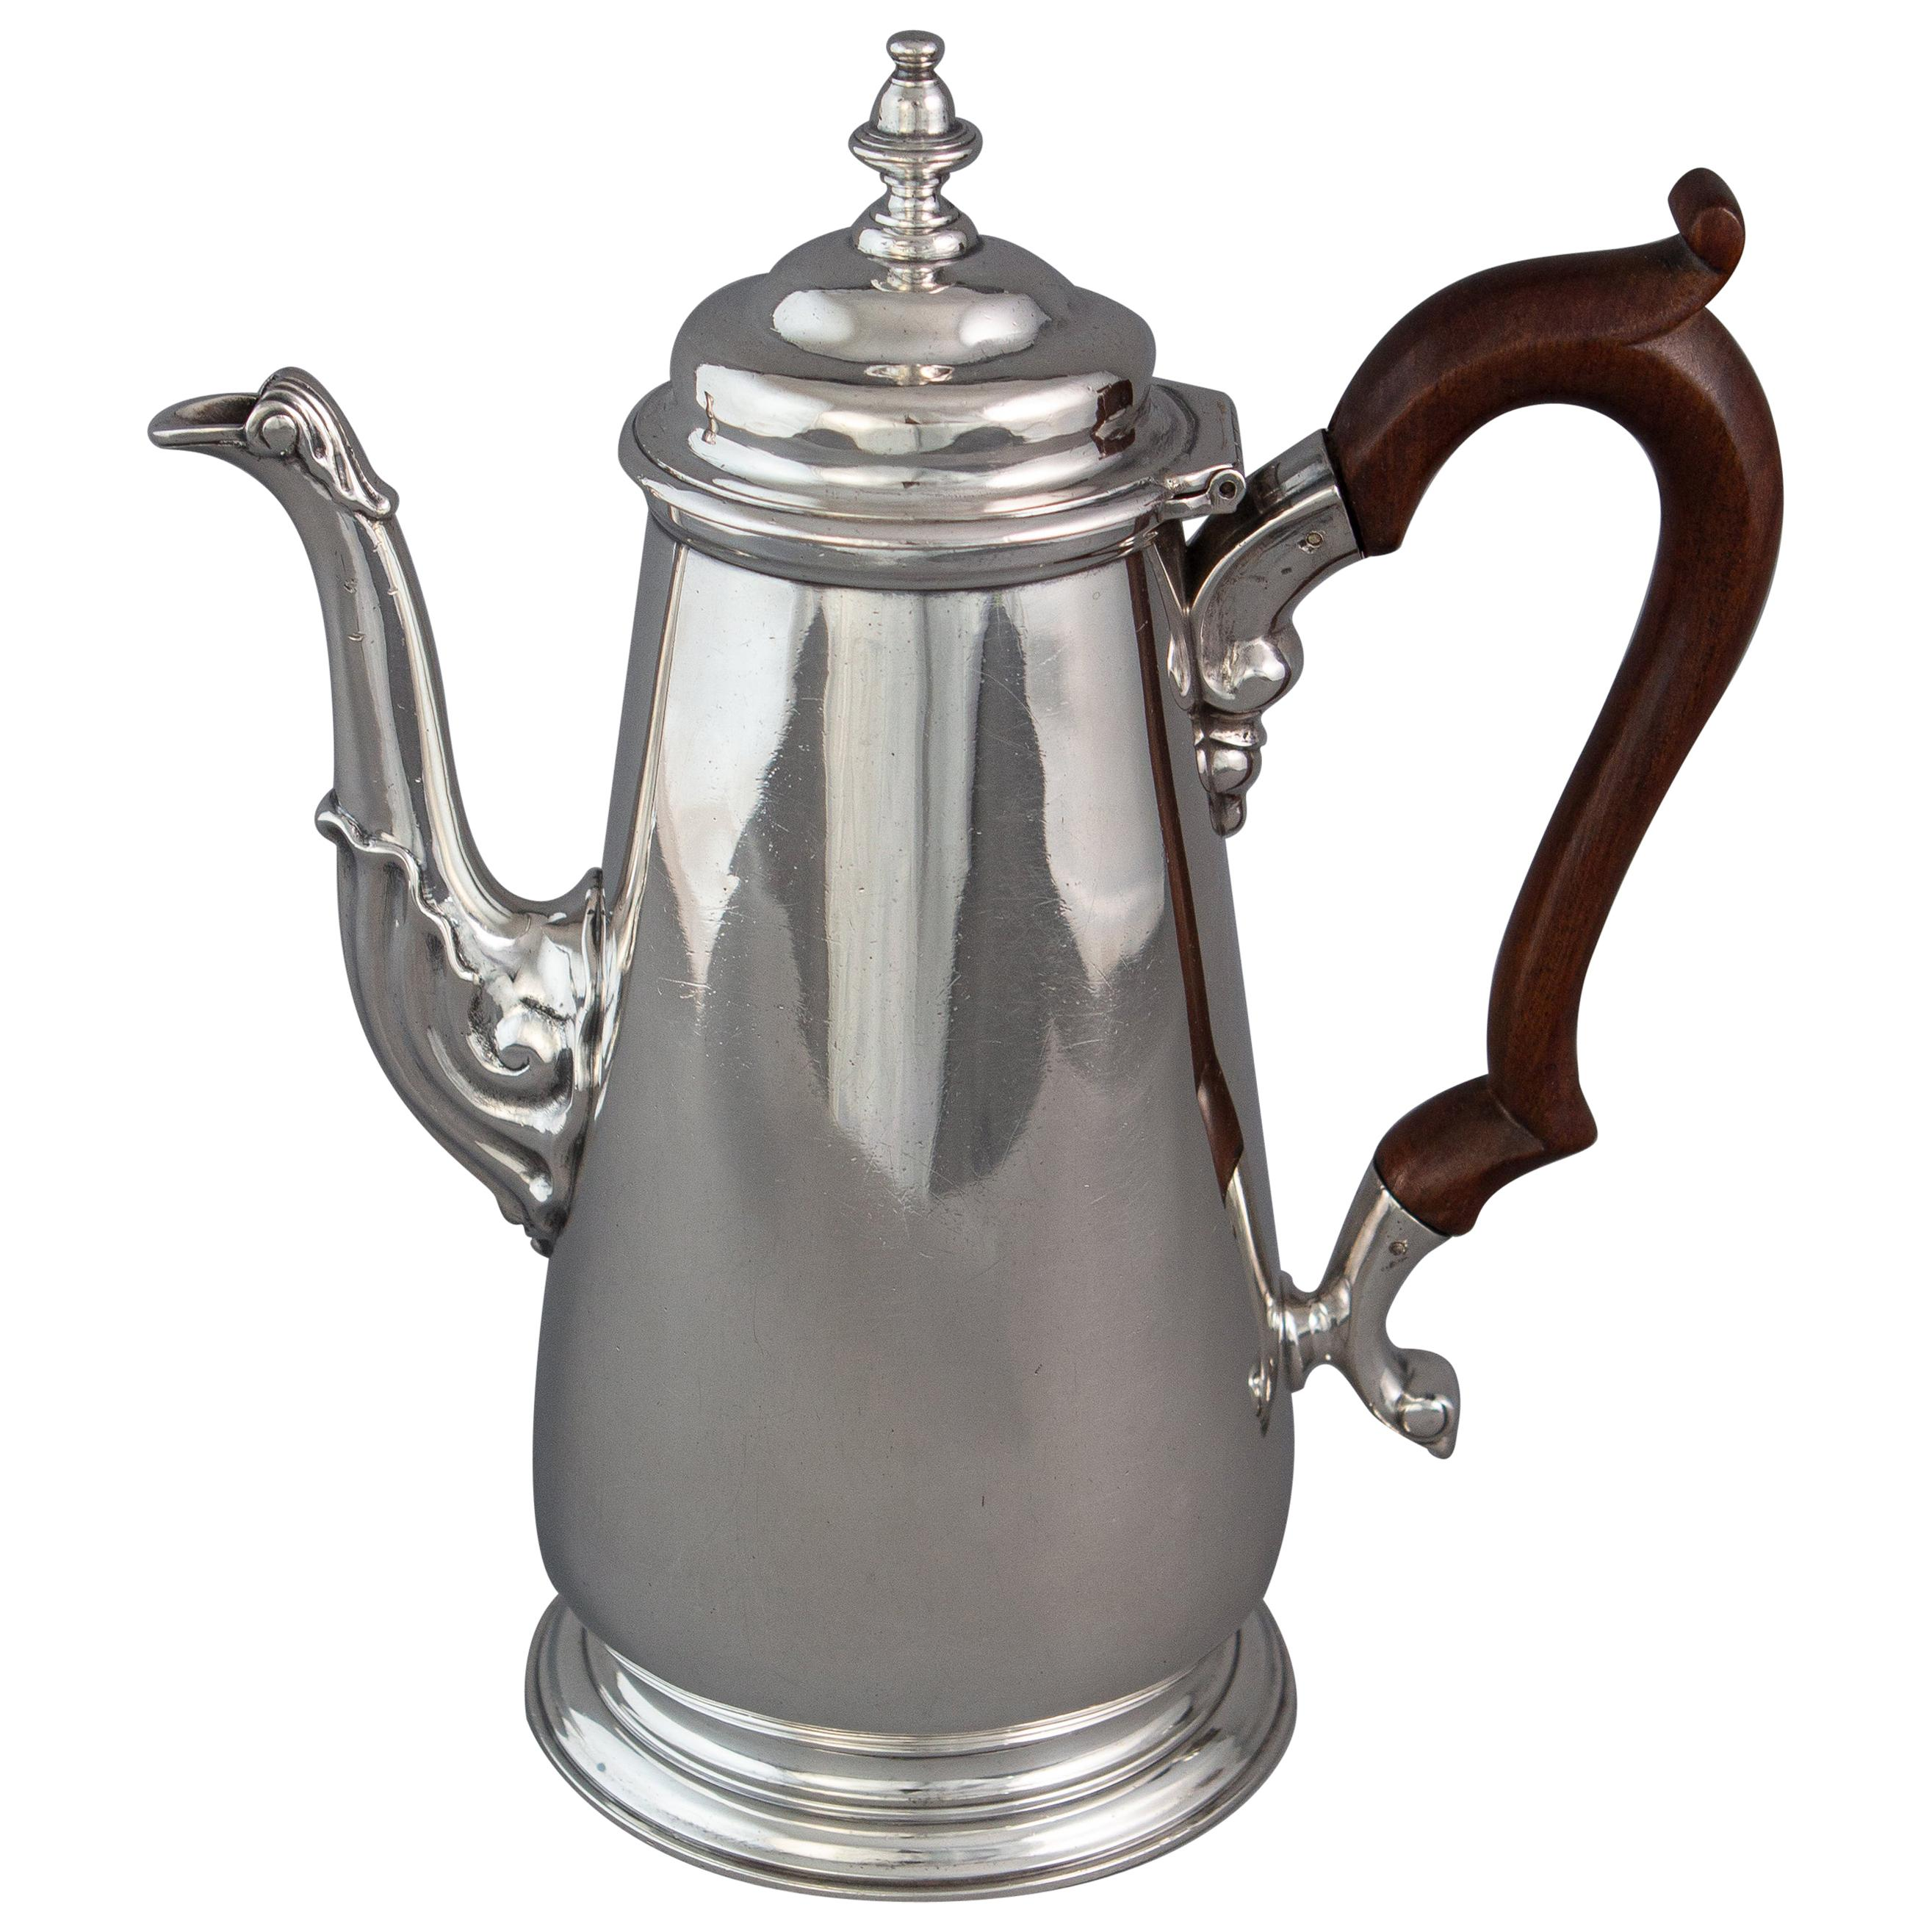 George II Silver Coffee Pot, London 1735 by Augustin Courtauld